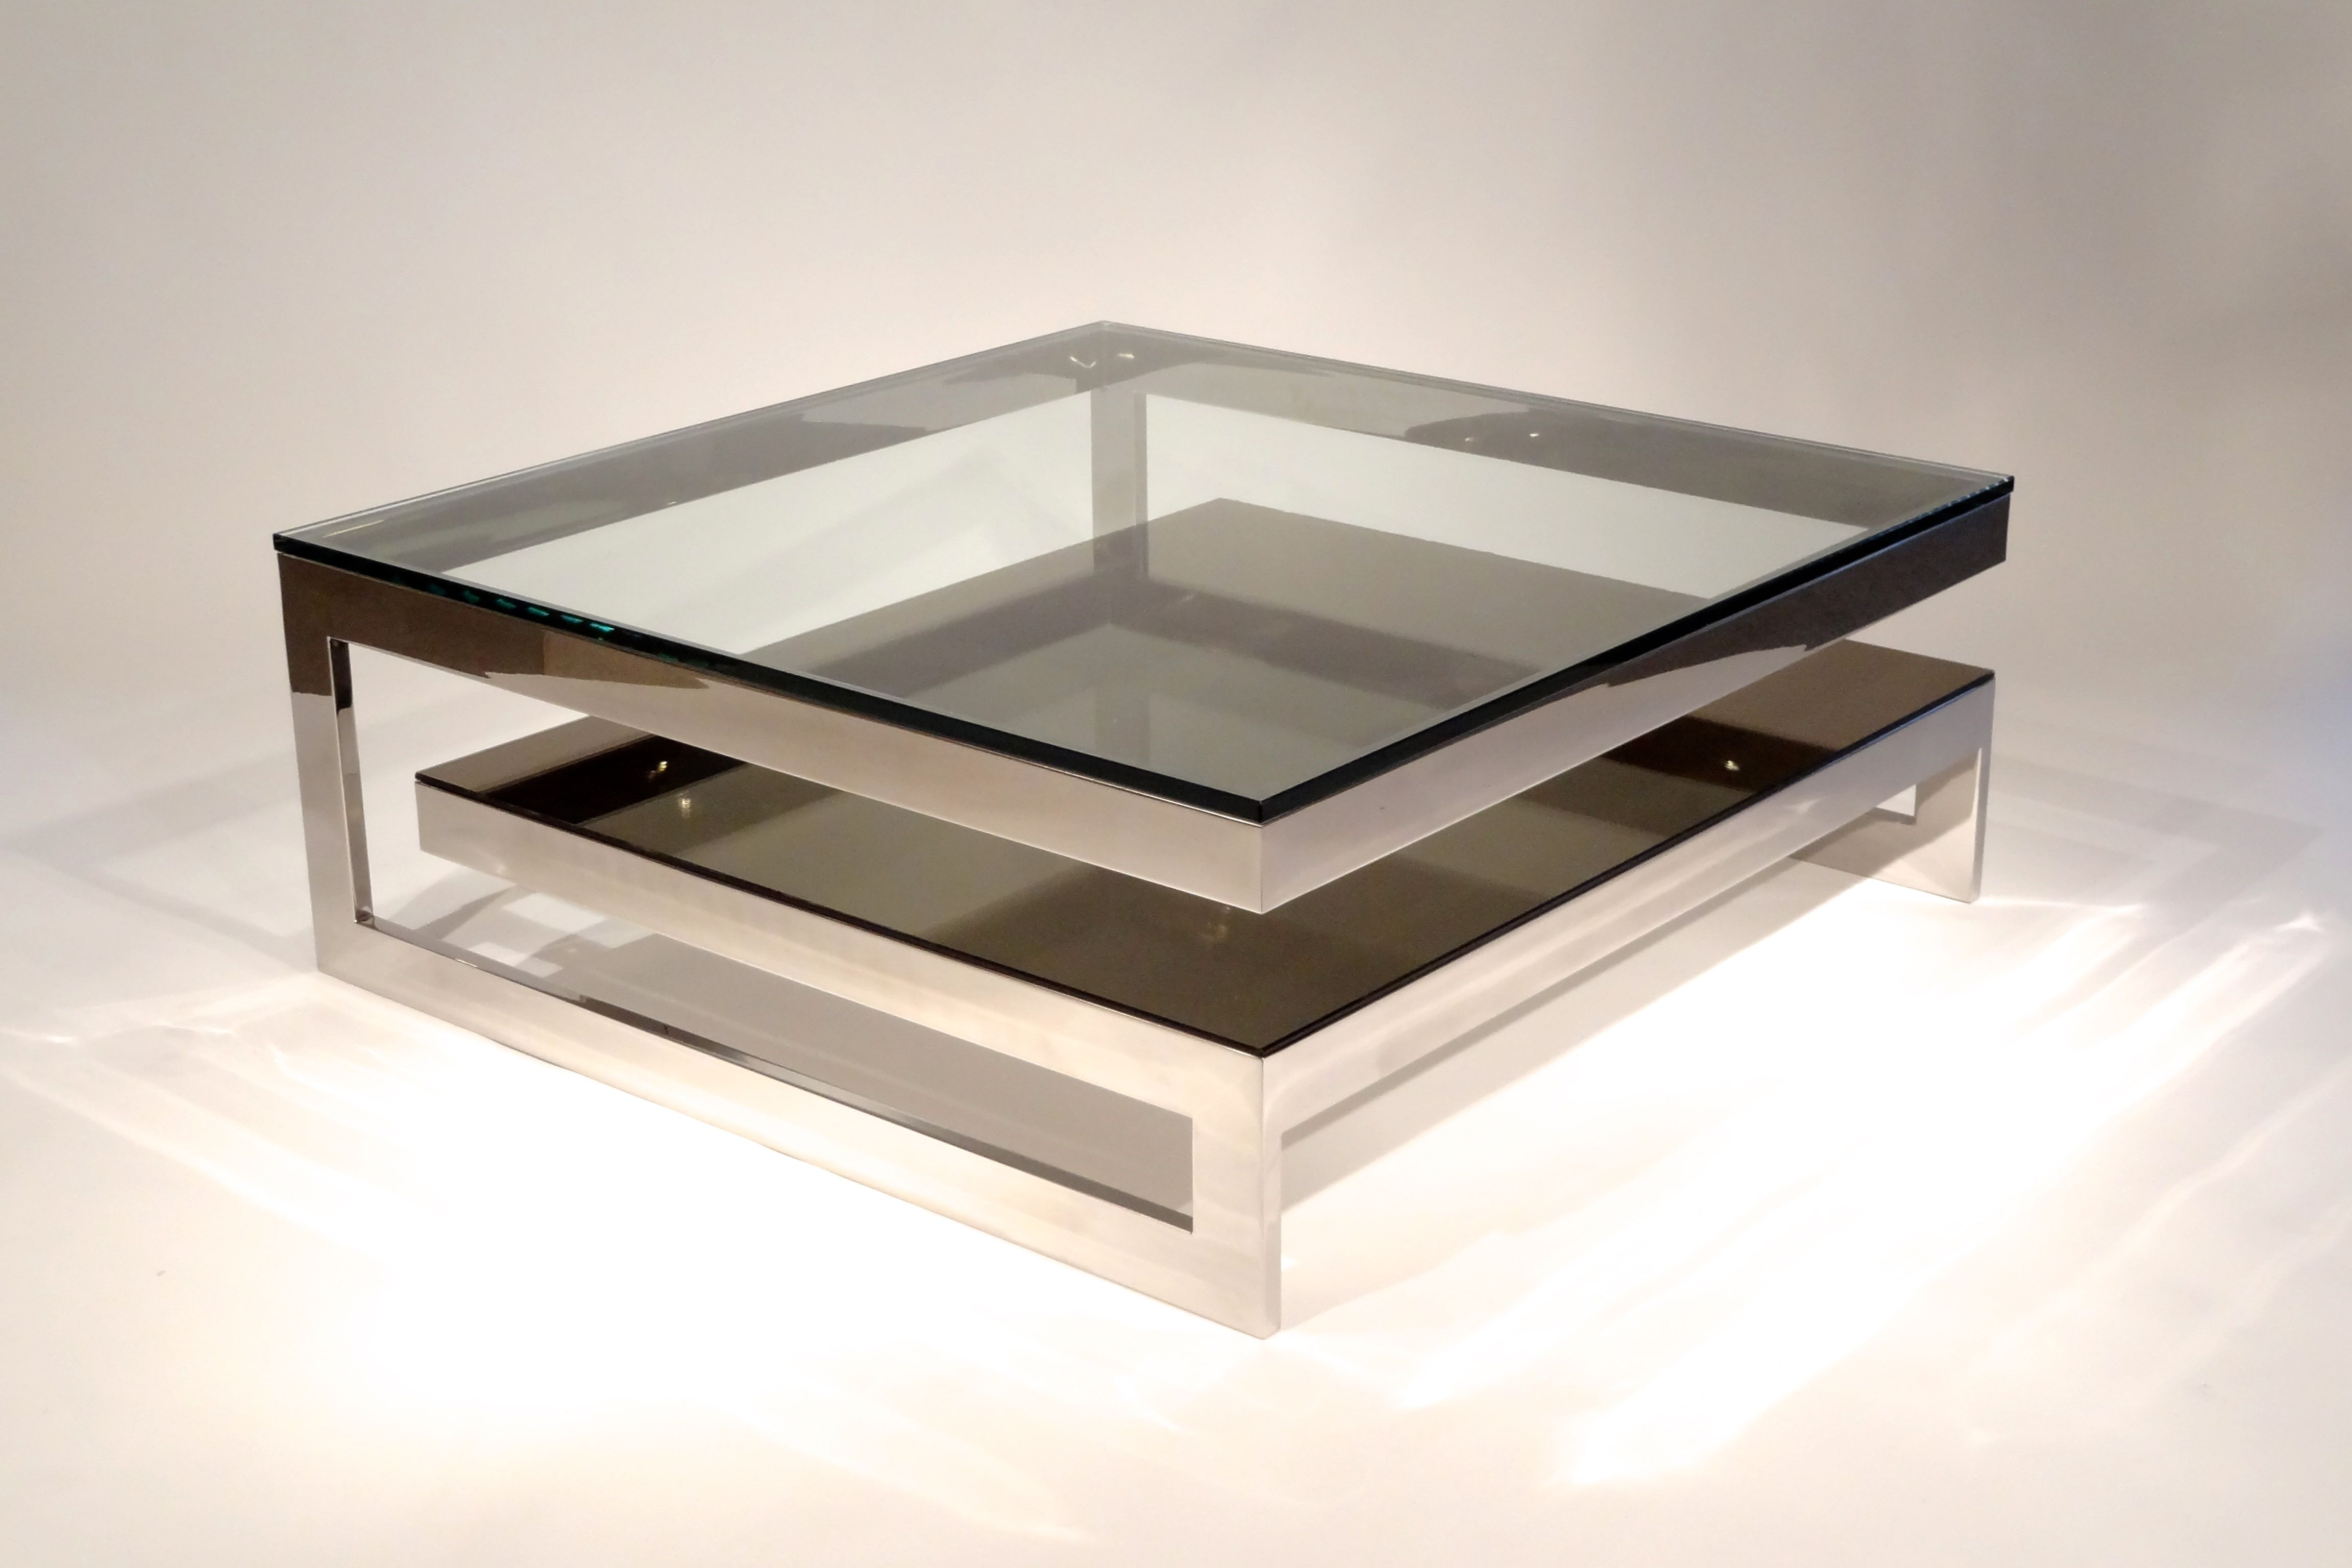 Mesmerizing mirrored coffee table for your living room for Modern home design furniture